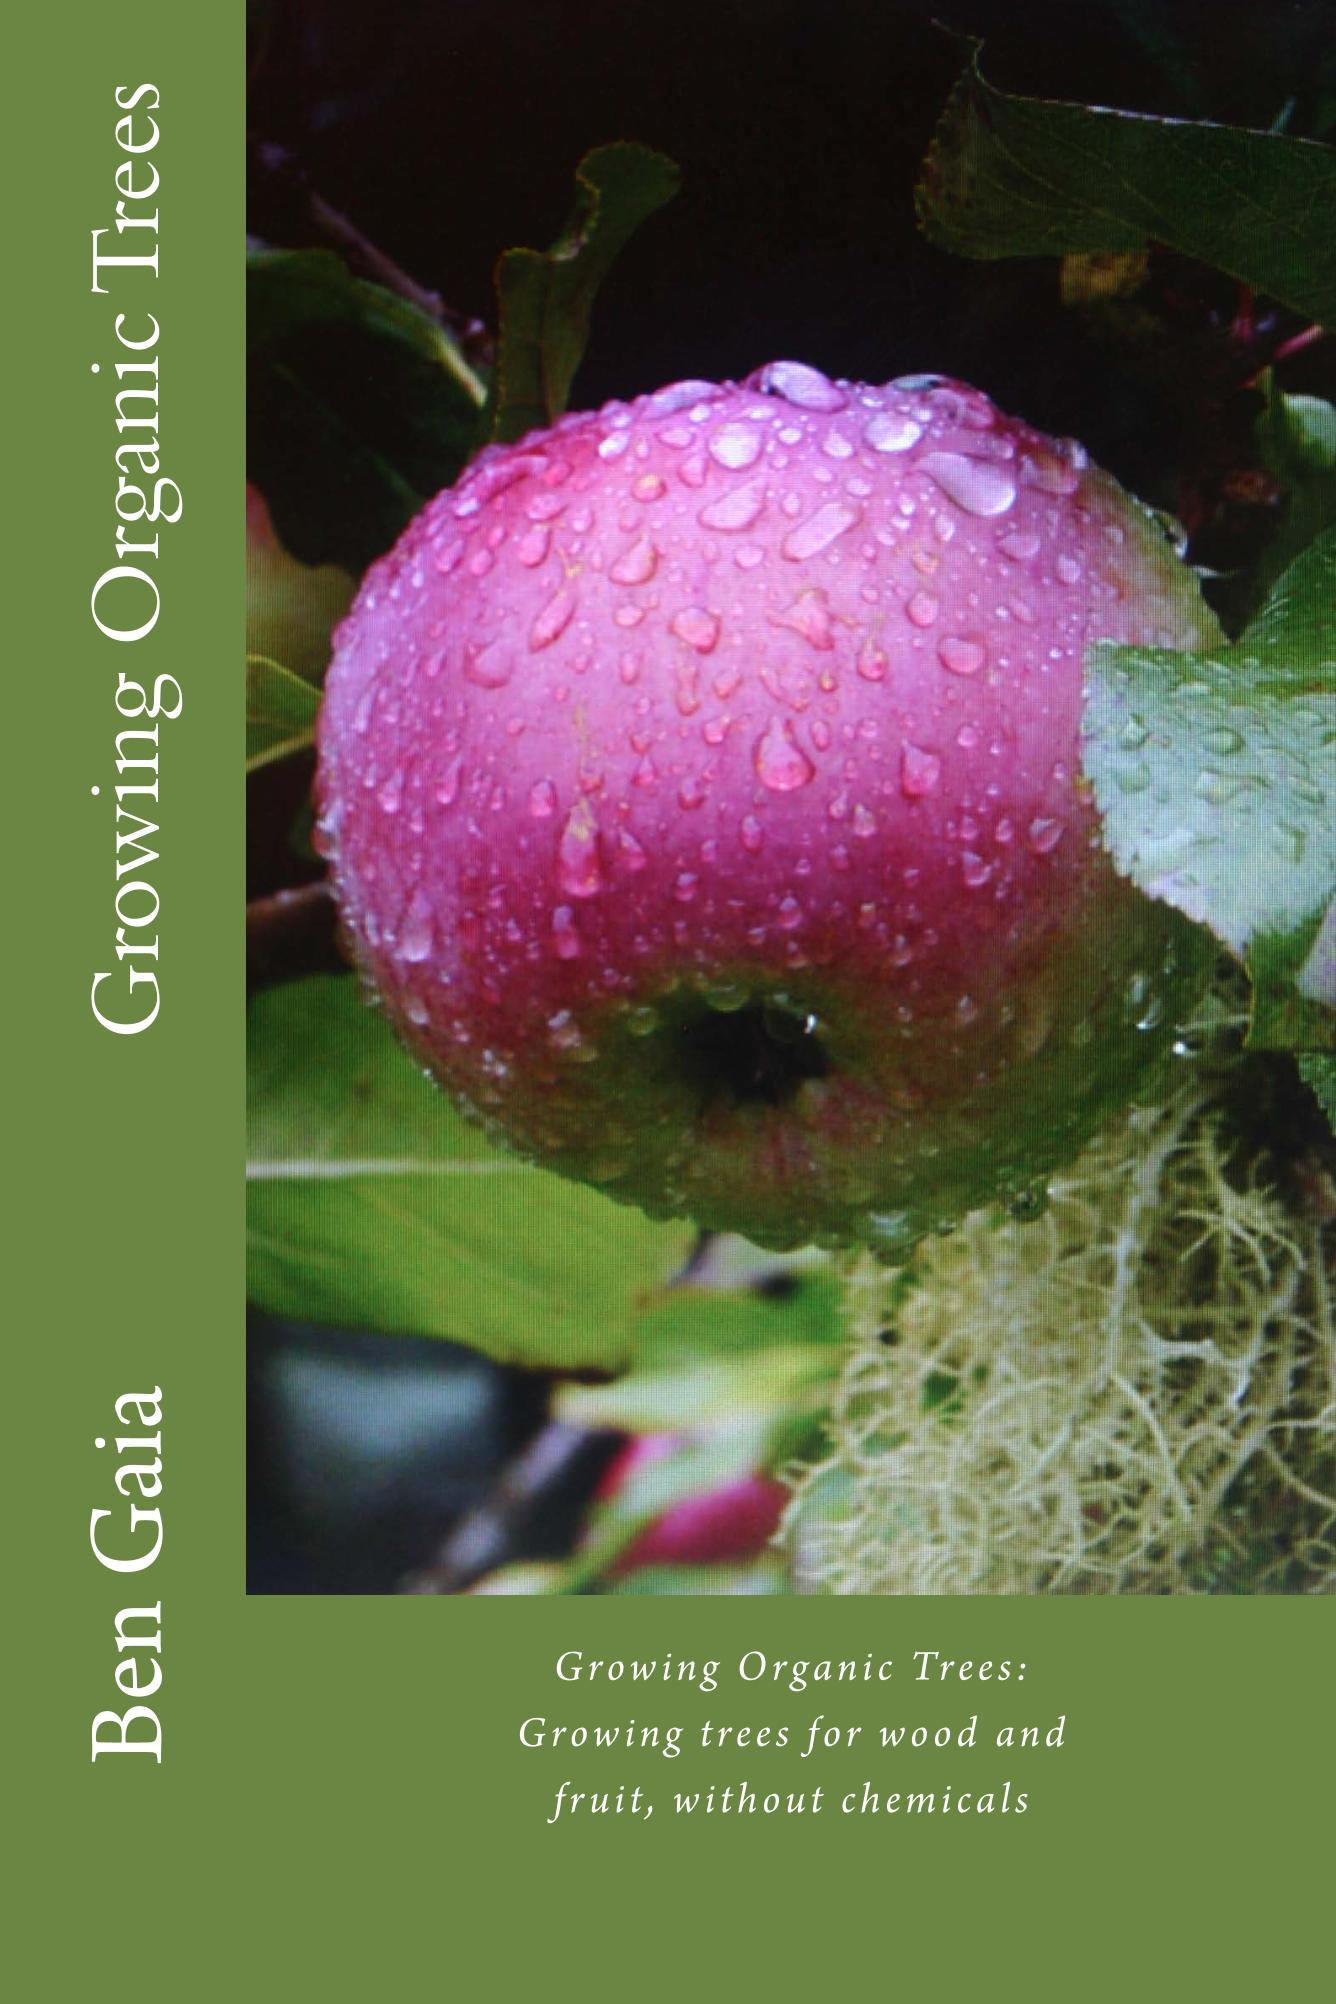 cover of Growing Organic Trees, a luscious organic sturmer apple dripping with raindrops